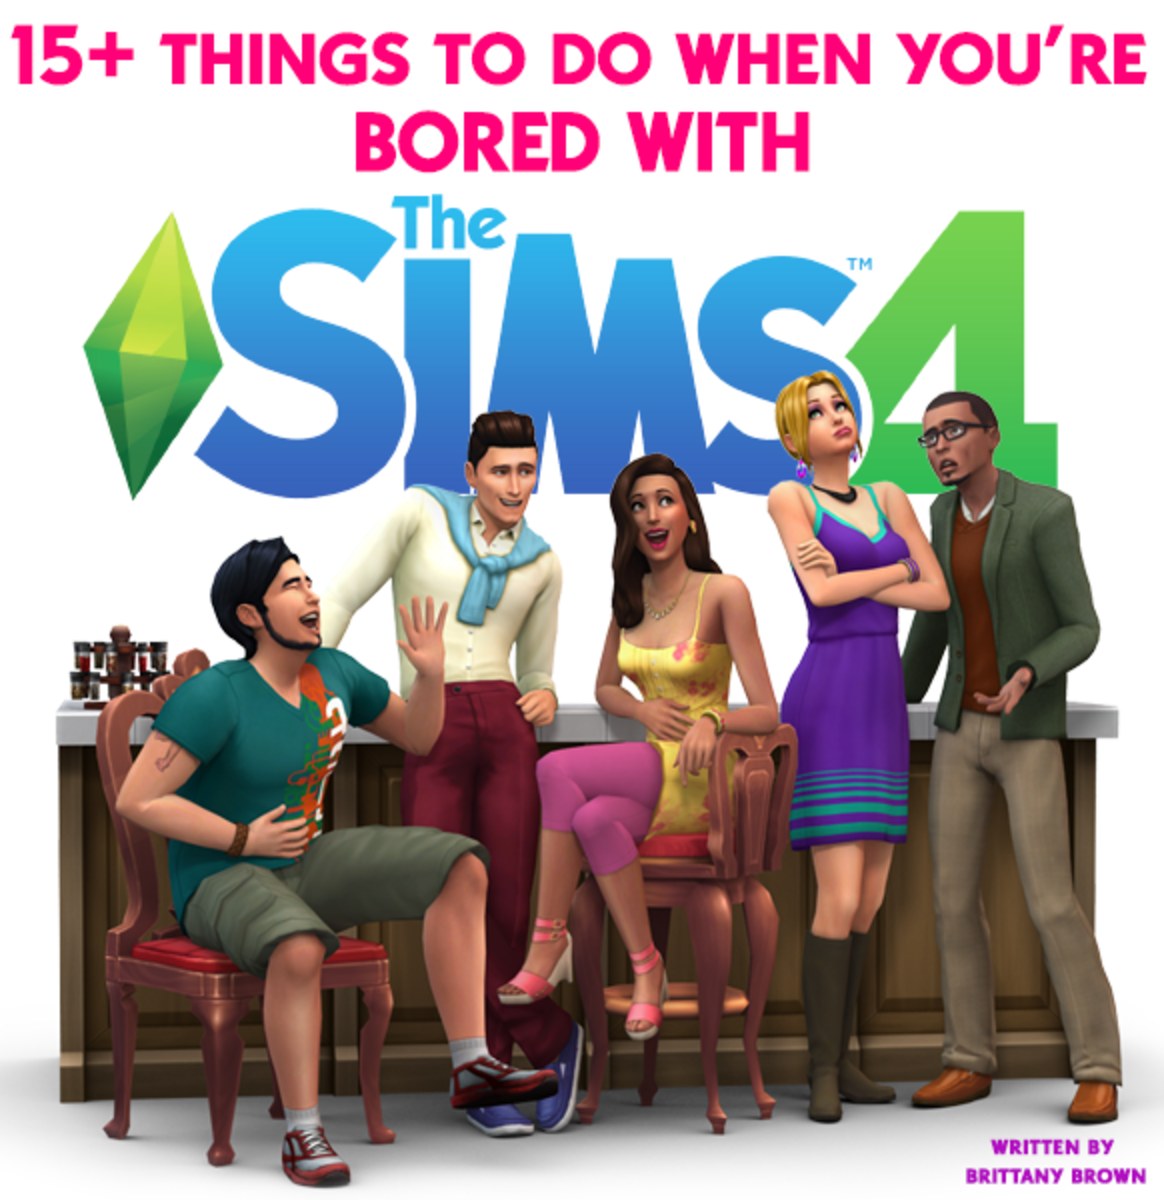 15+ Things to Do When